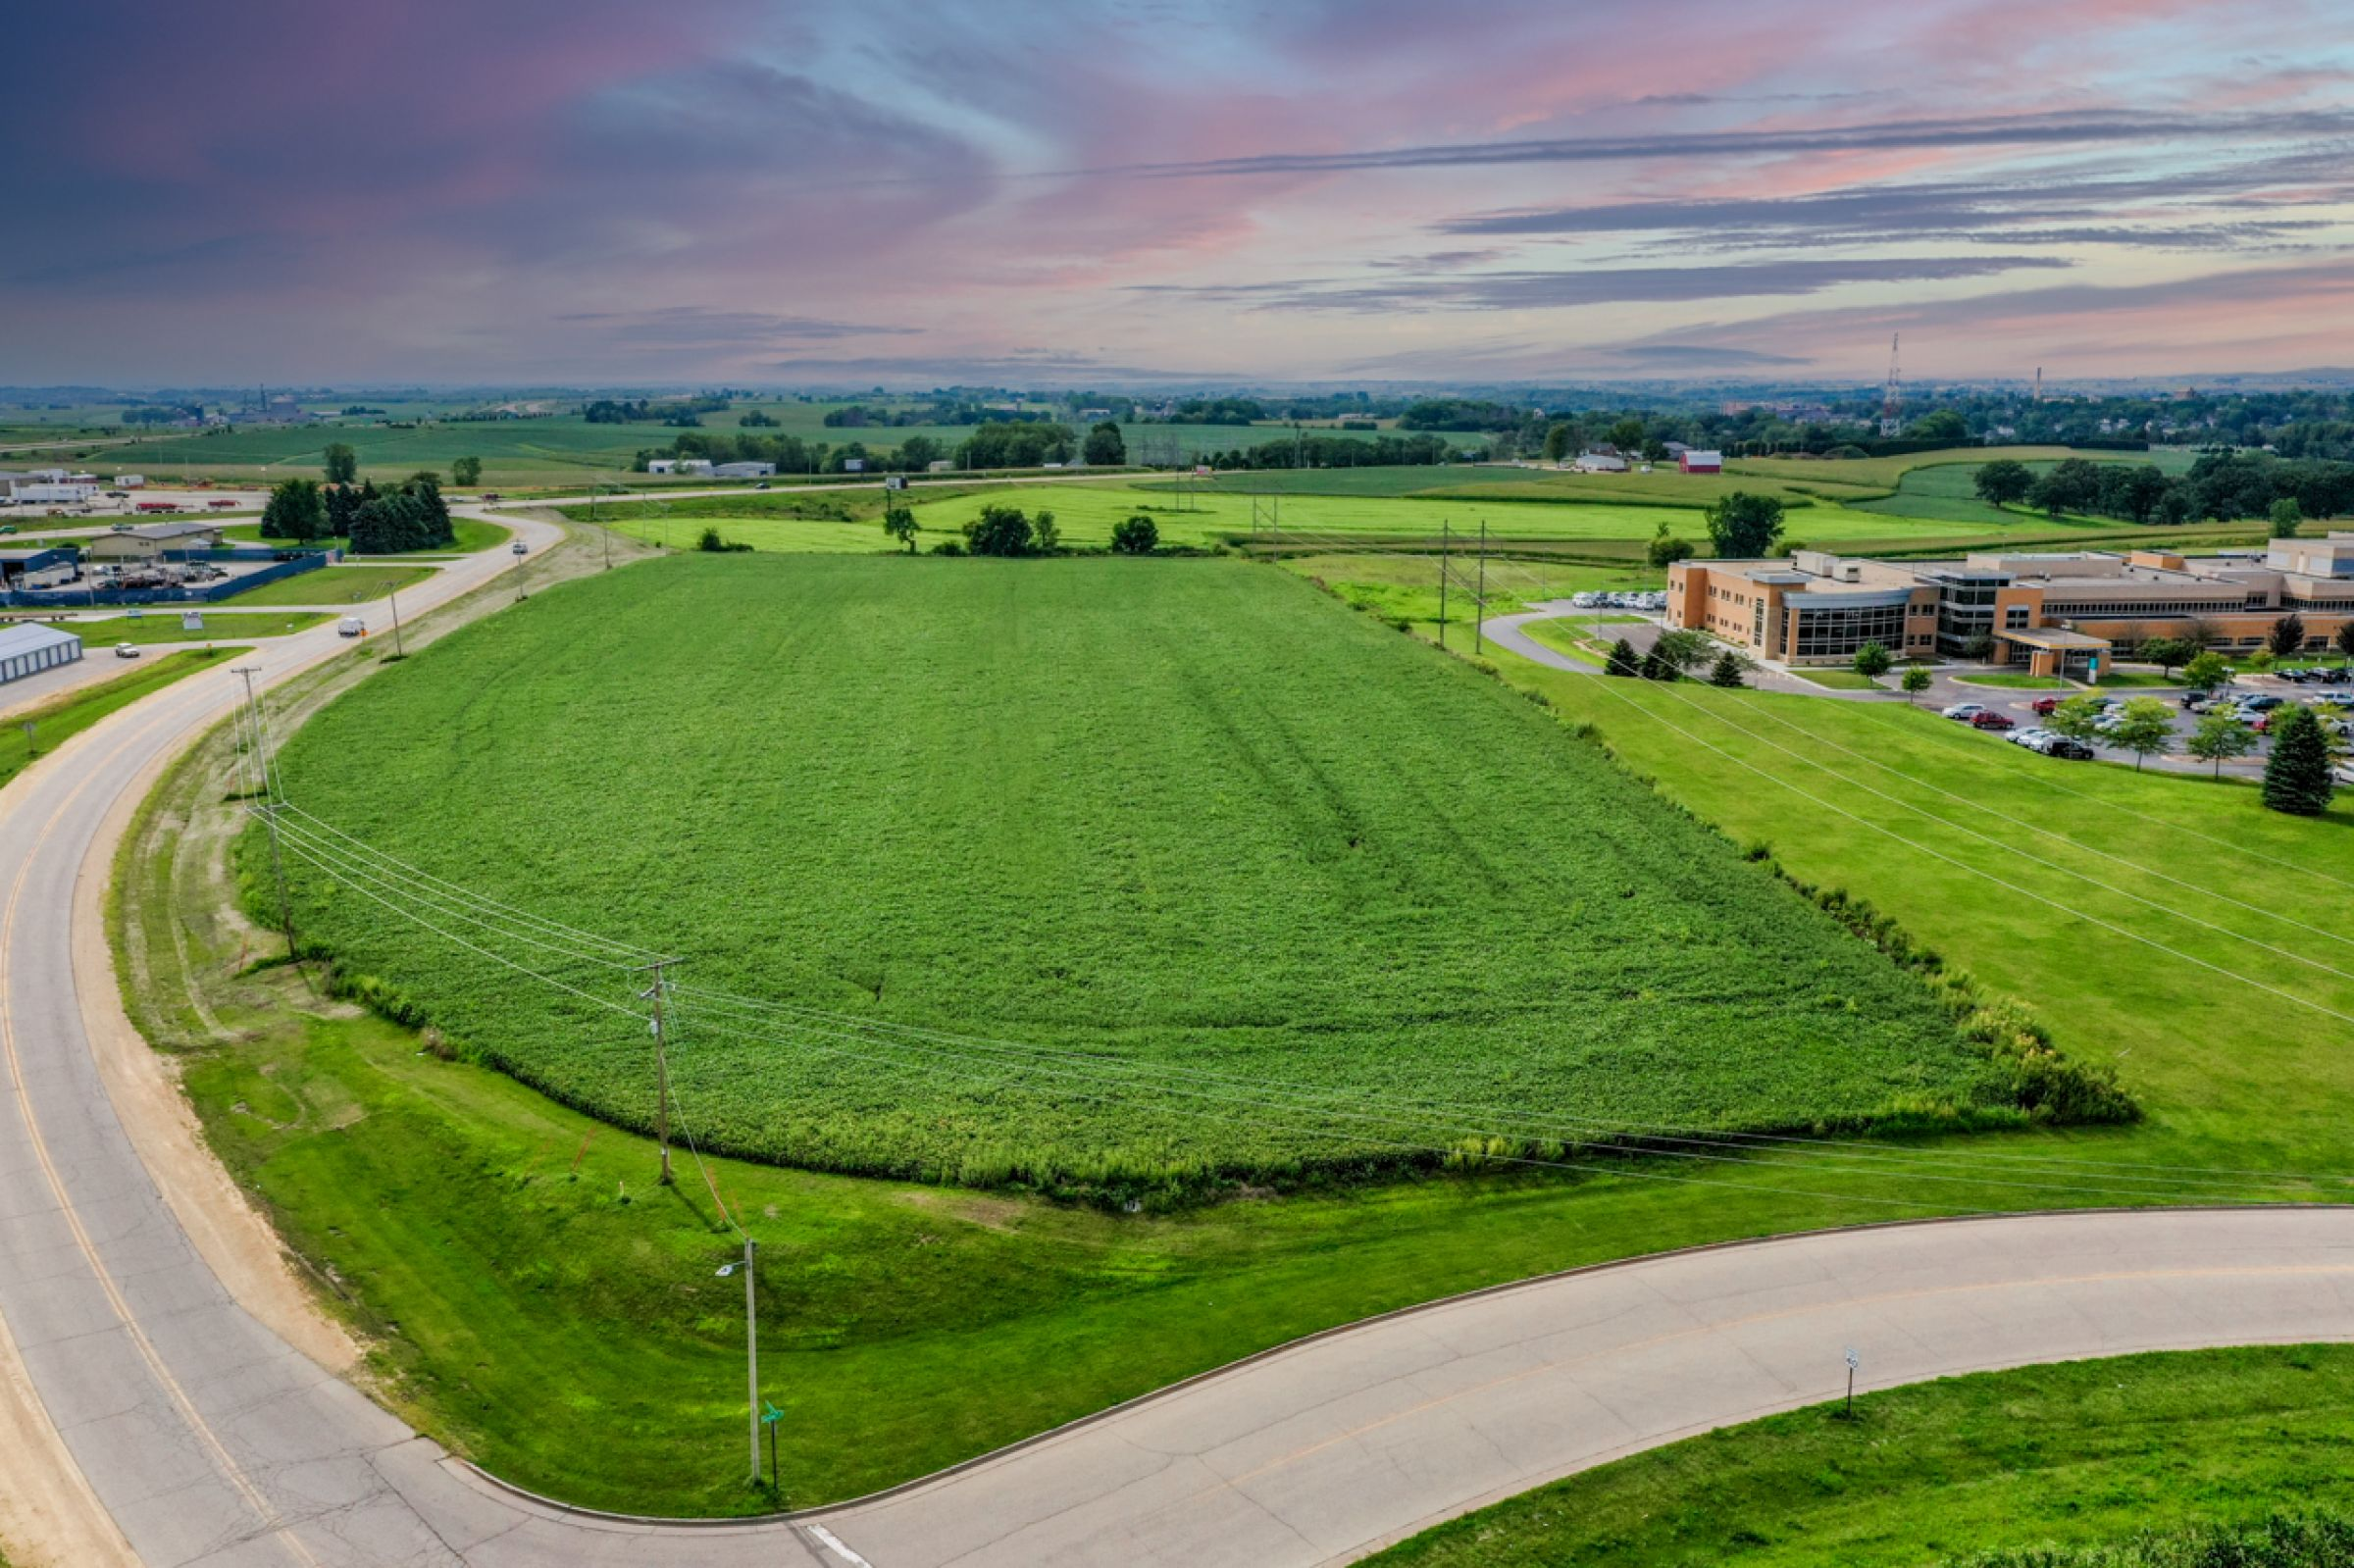 development-land-grant-county-wisconsin-12-acres-listing-number-15746-0-2021-09-13-014235.jpg